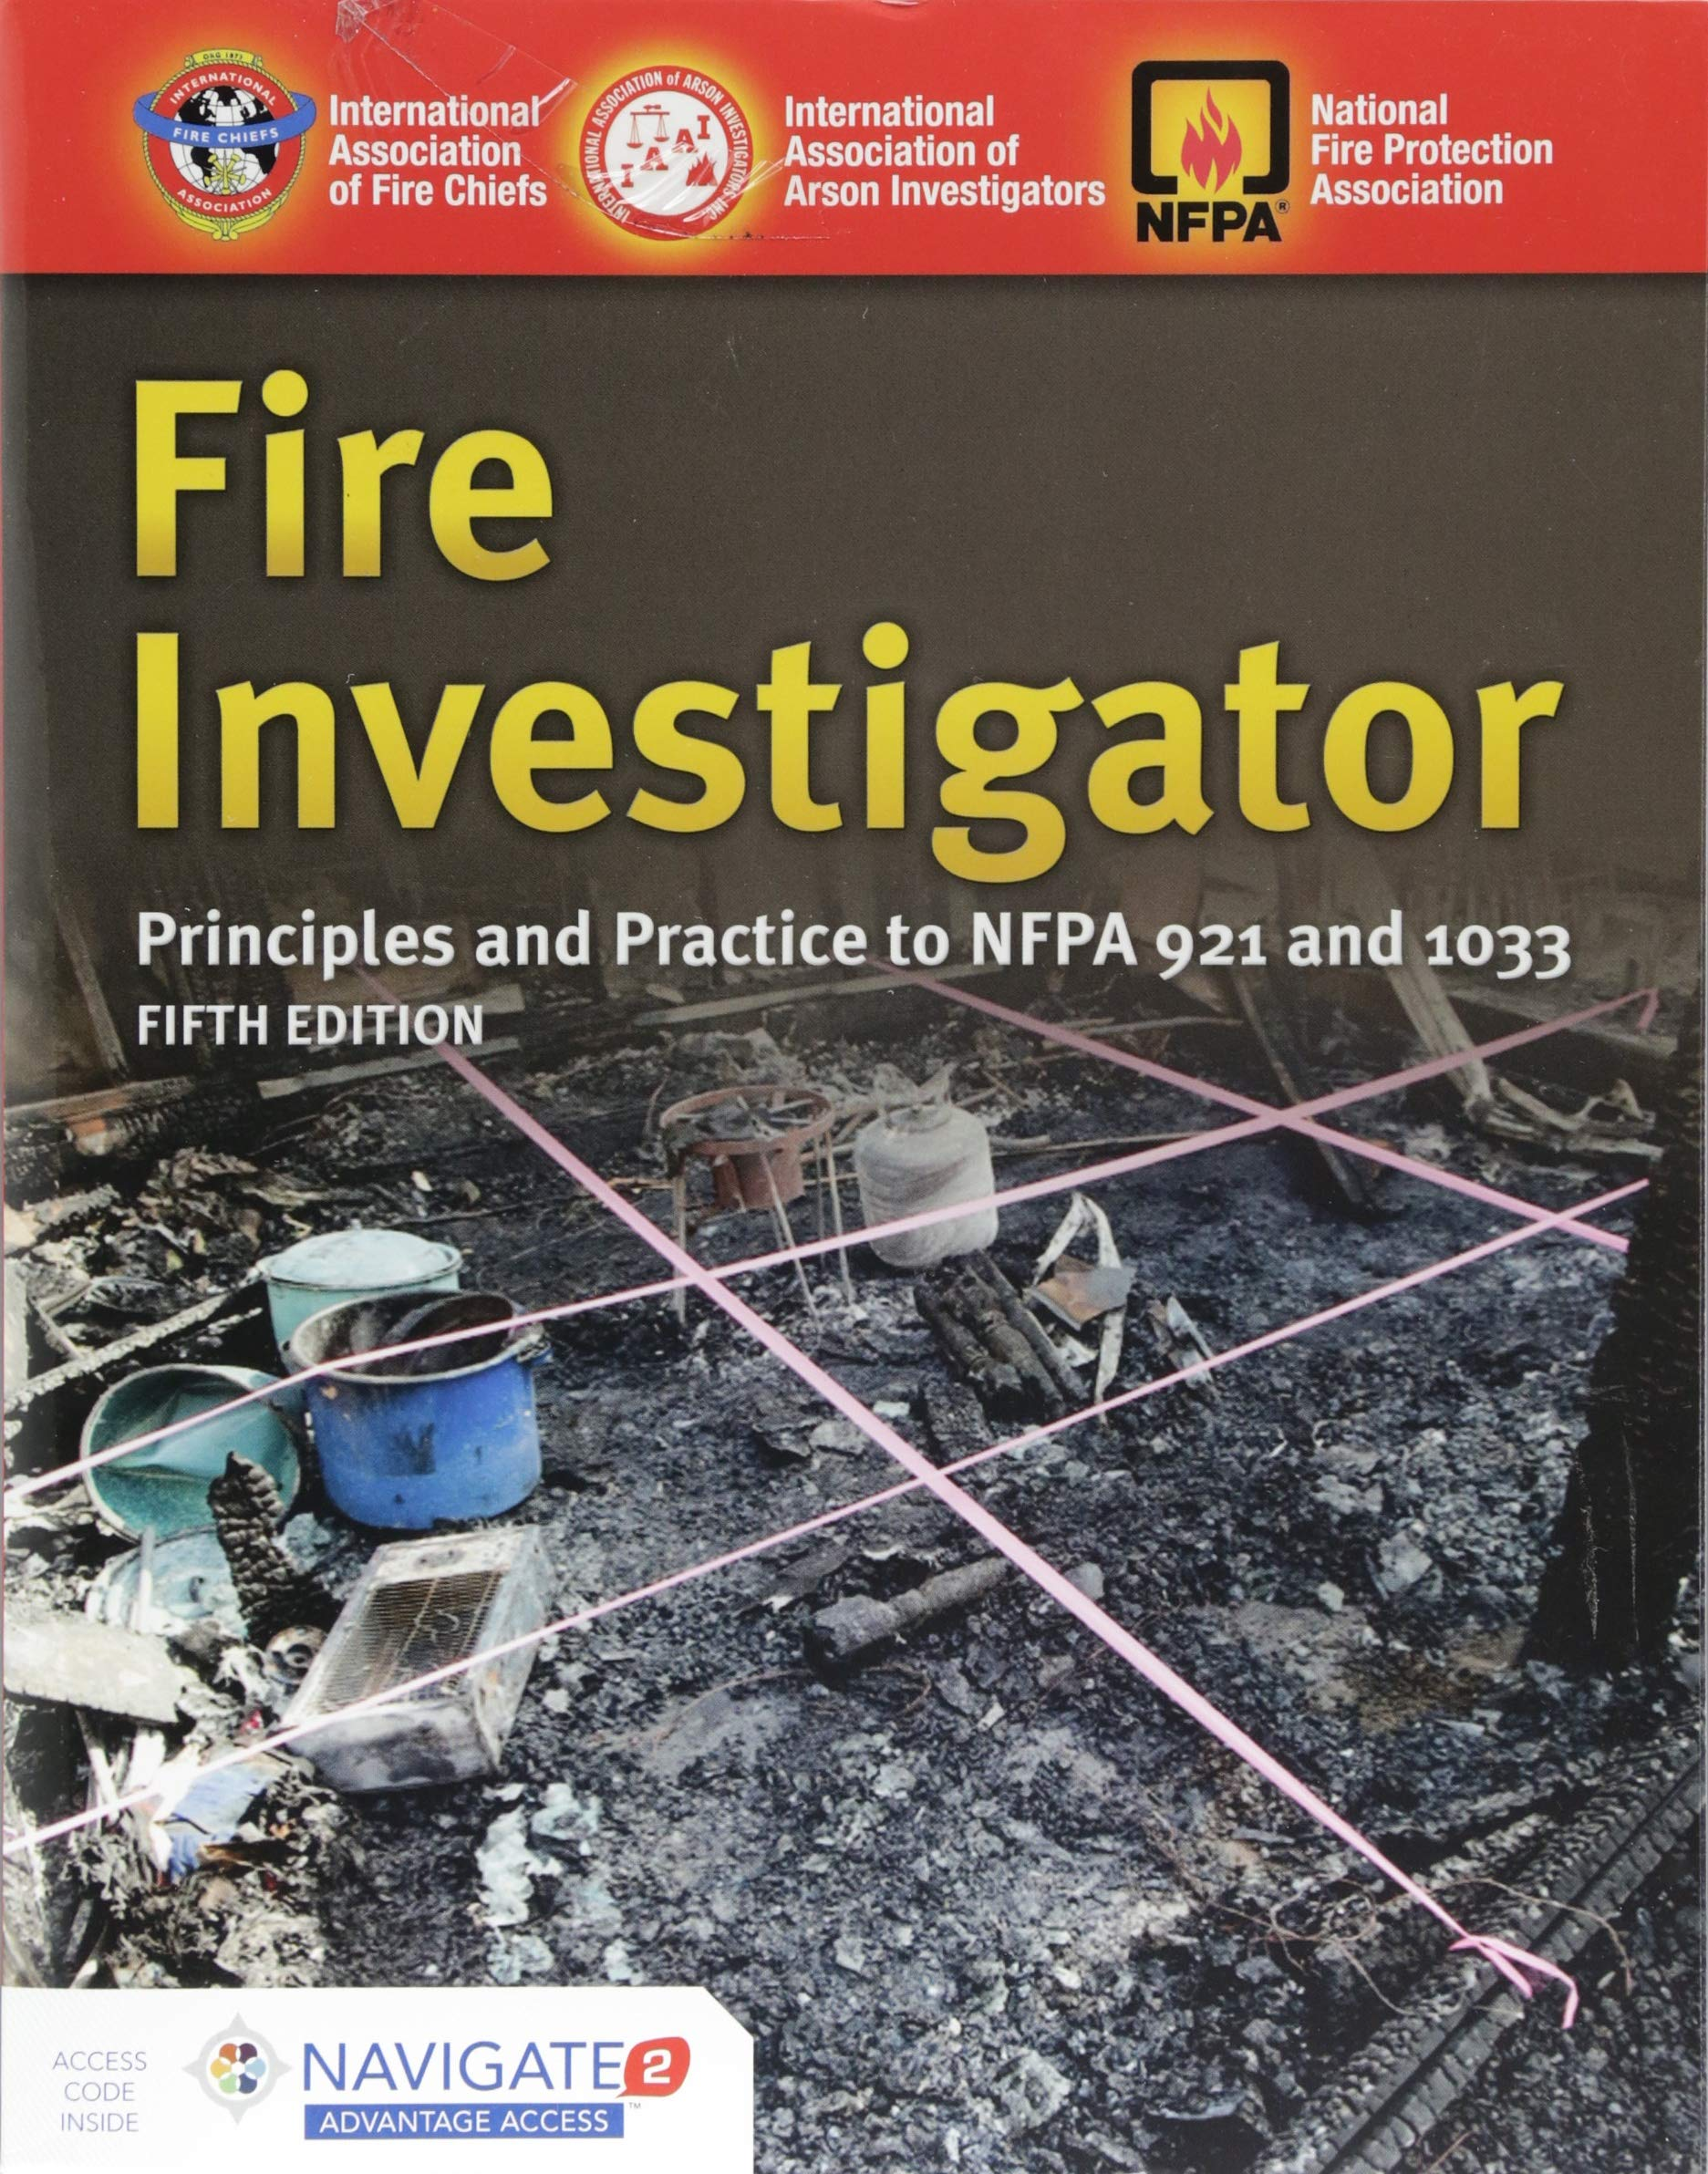 Fire Investigator  Principles And Practice To NFPA 921 And 1033